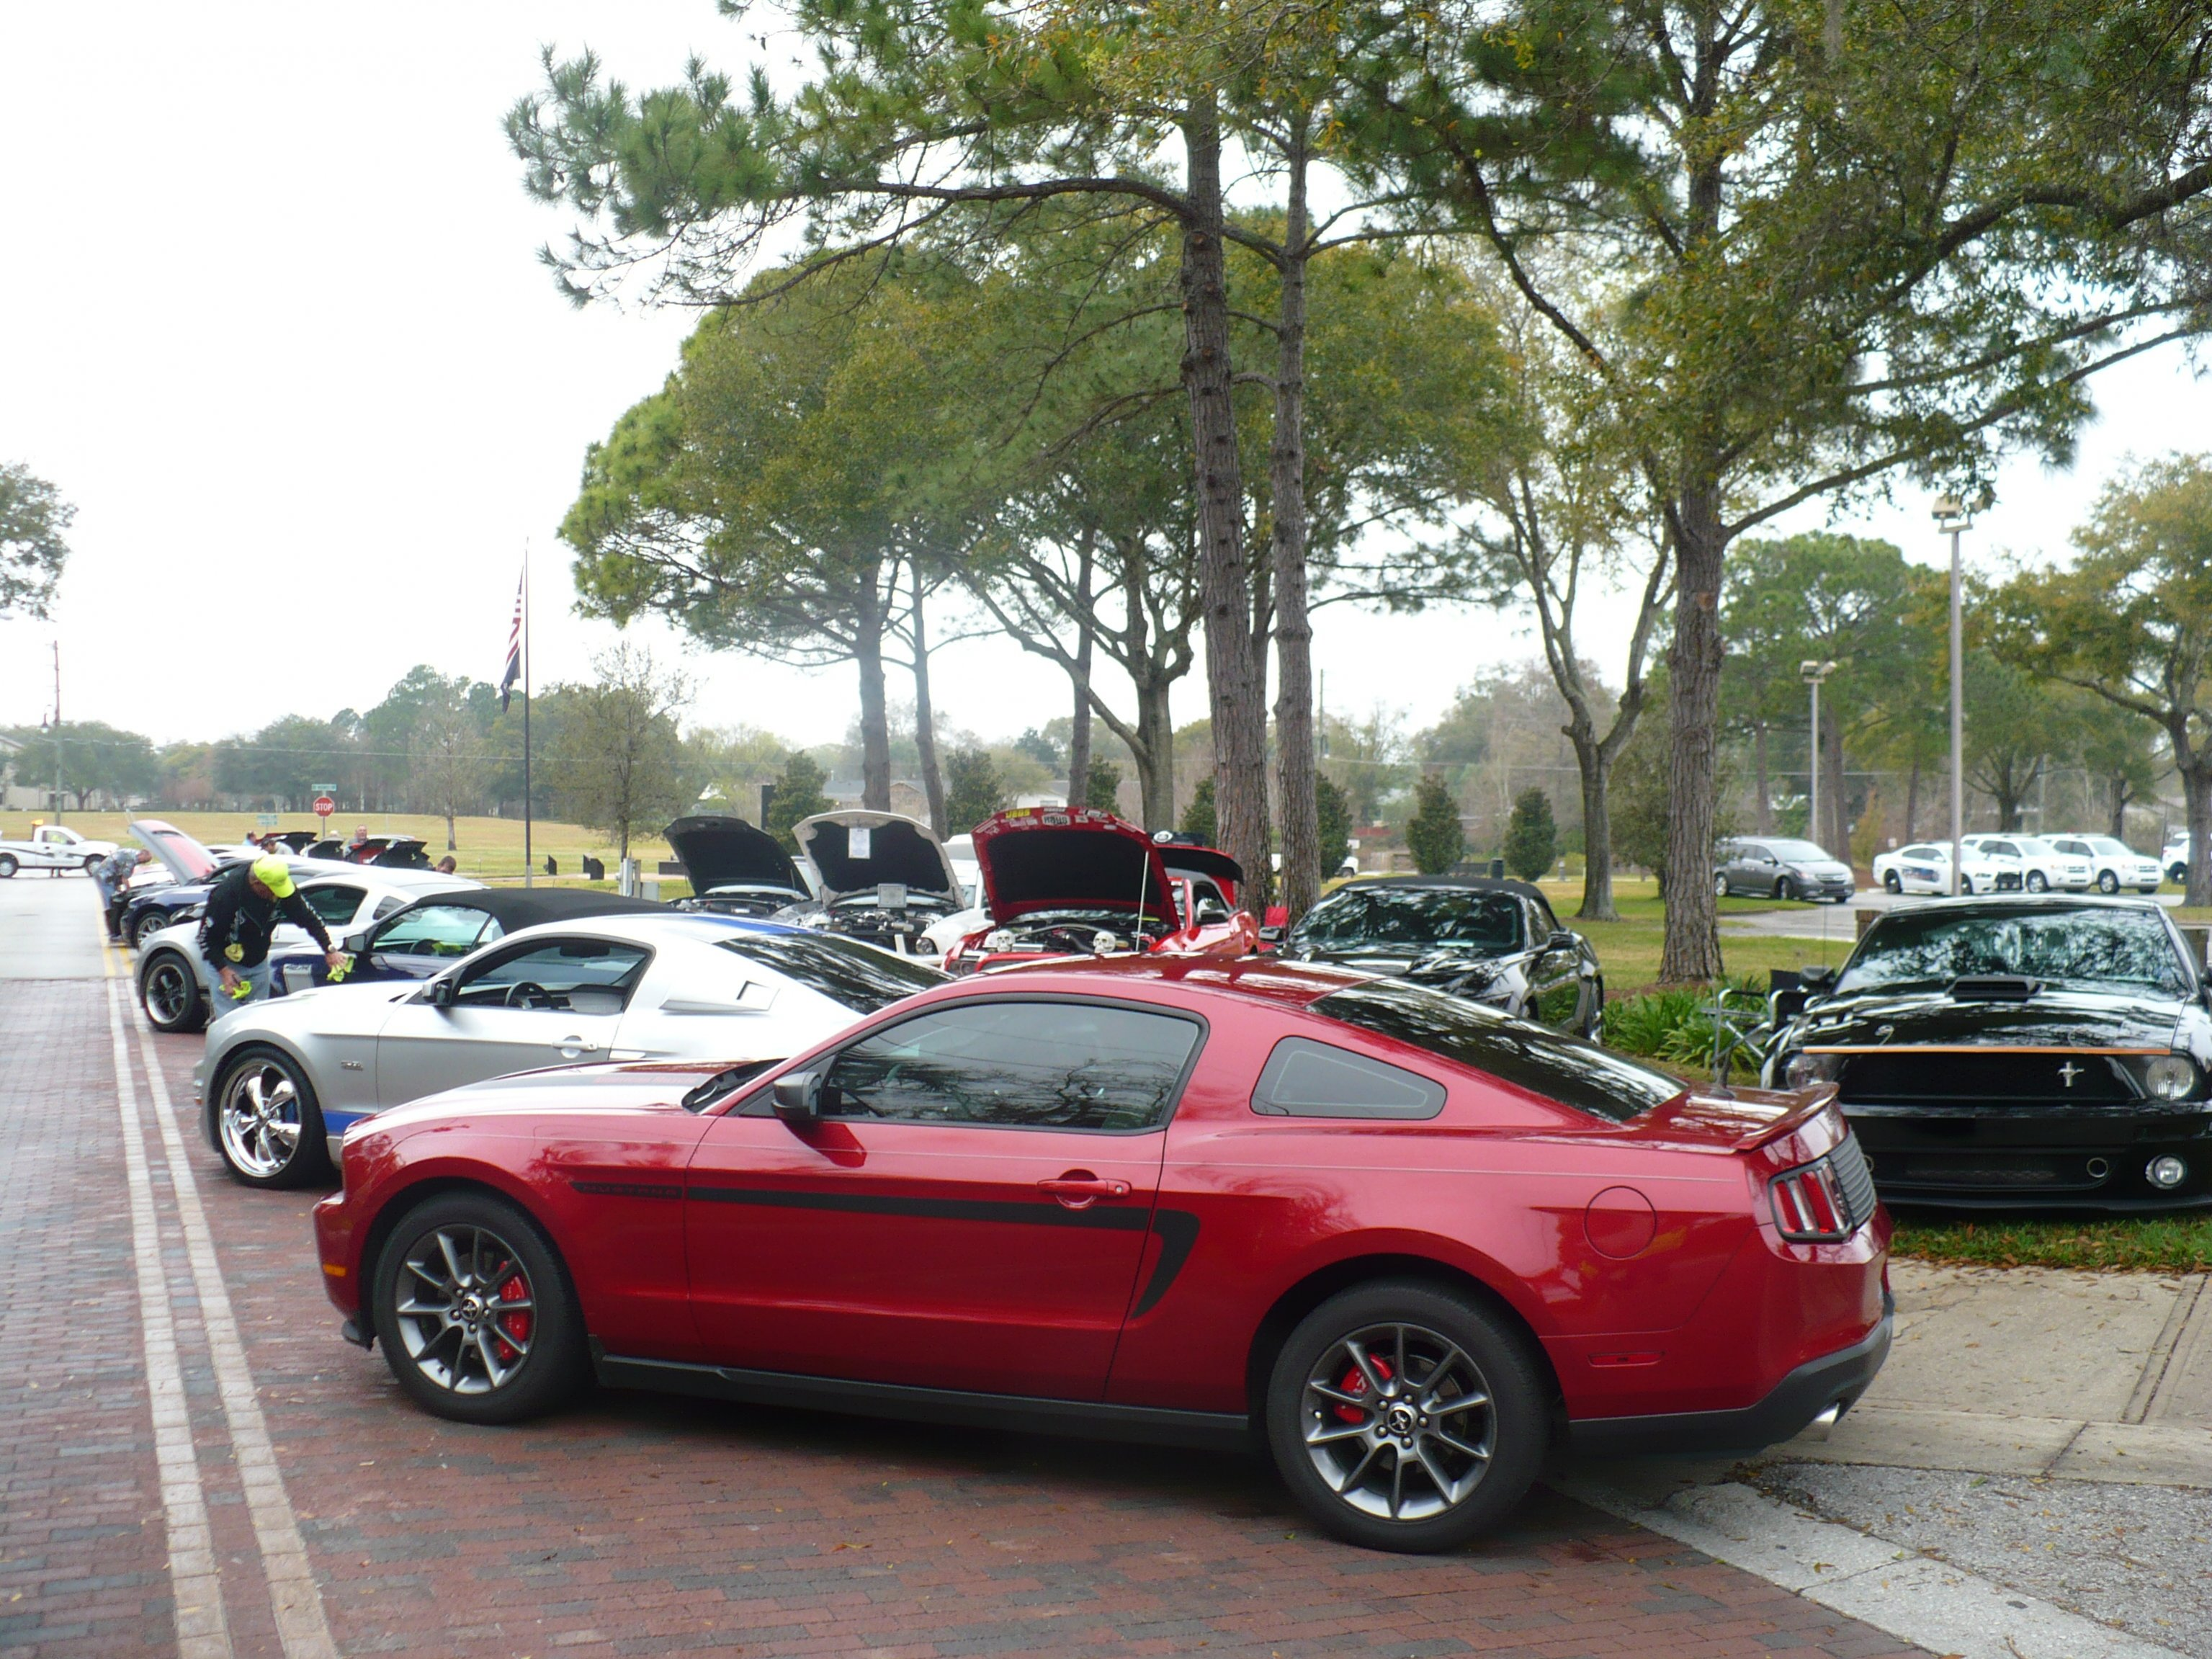 Click image for larger version  Name:Longwood rain Mustang.jpg Views:135 Size:1.15 MB ID:201816